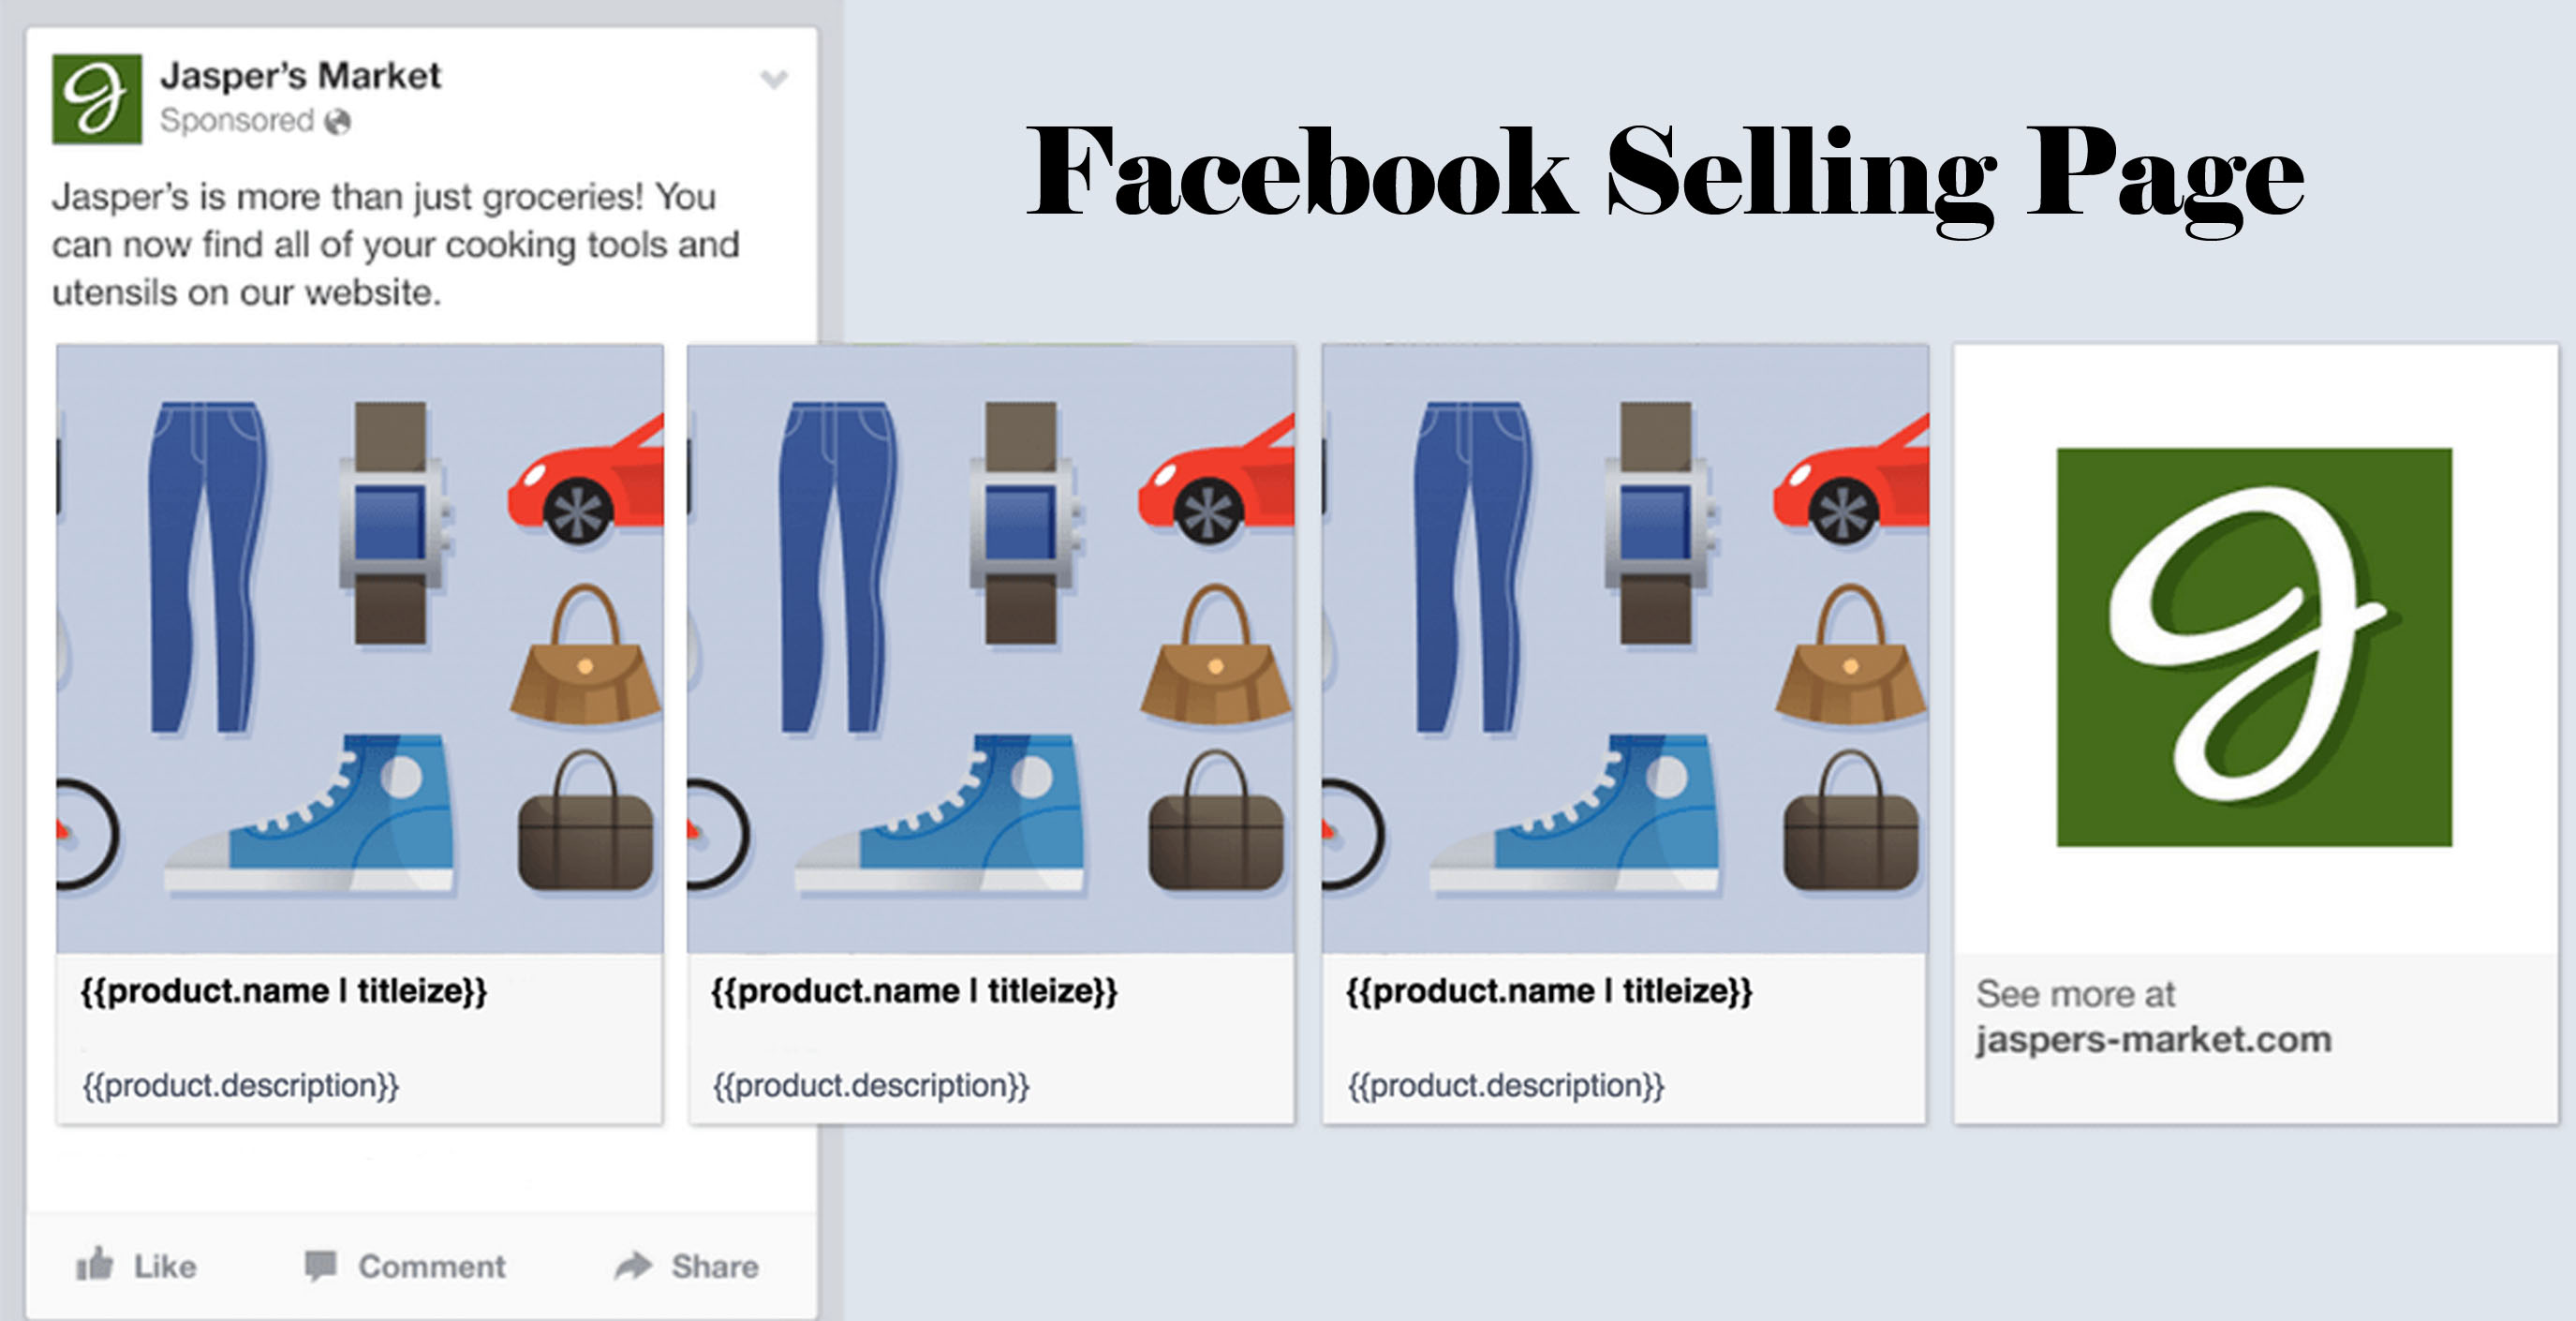 Facebook Selling Page – Facebook Page for Selling Items